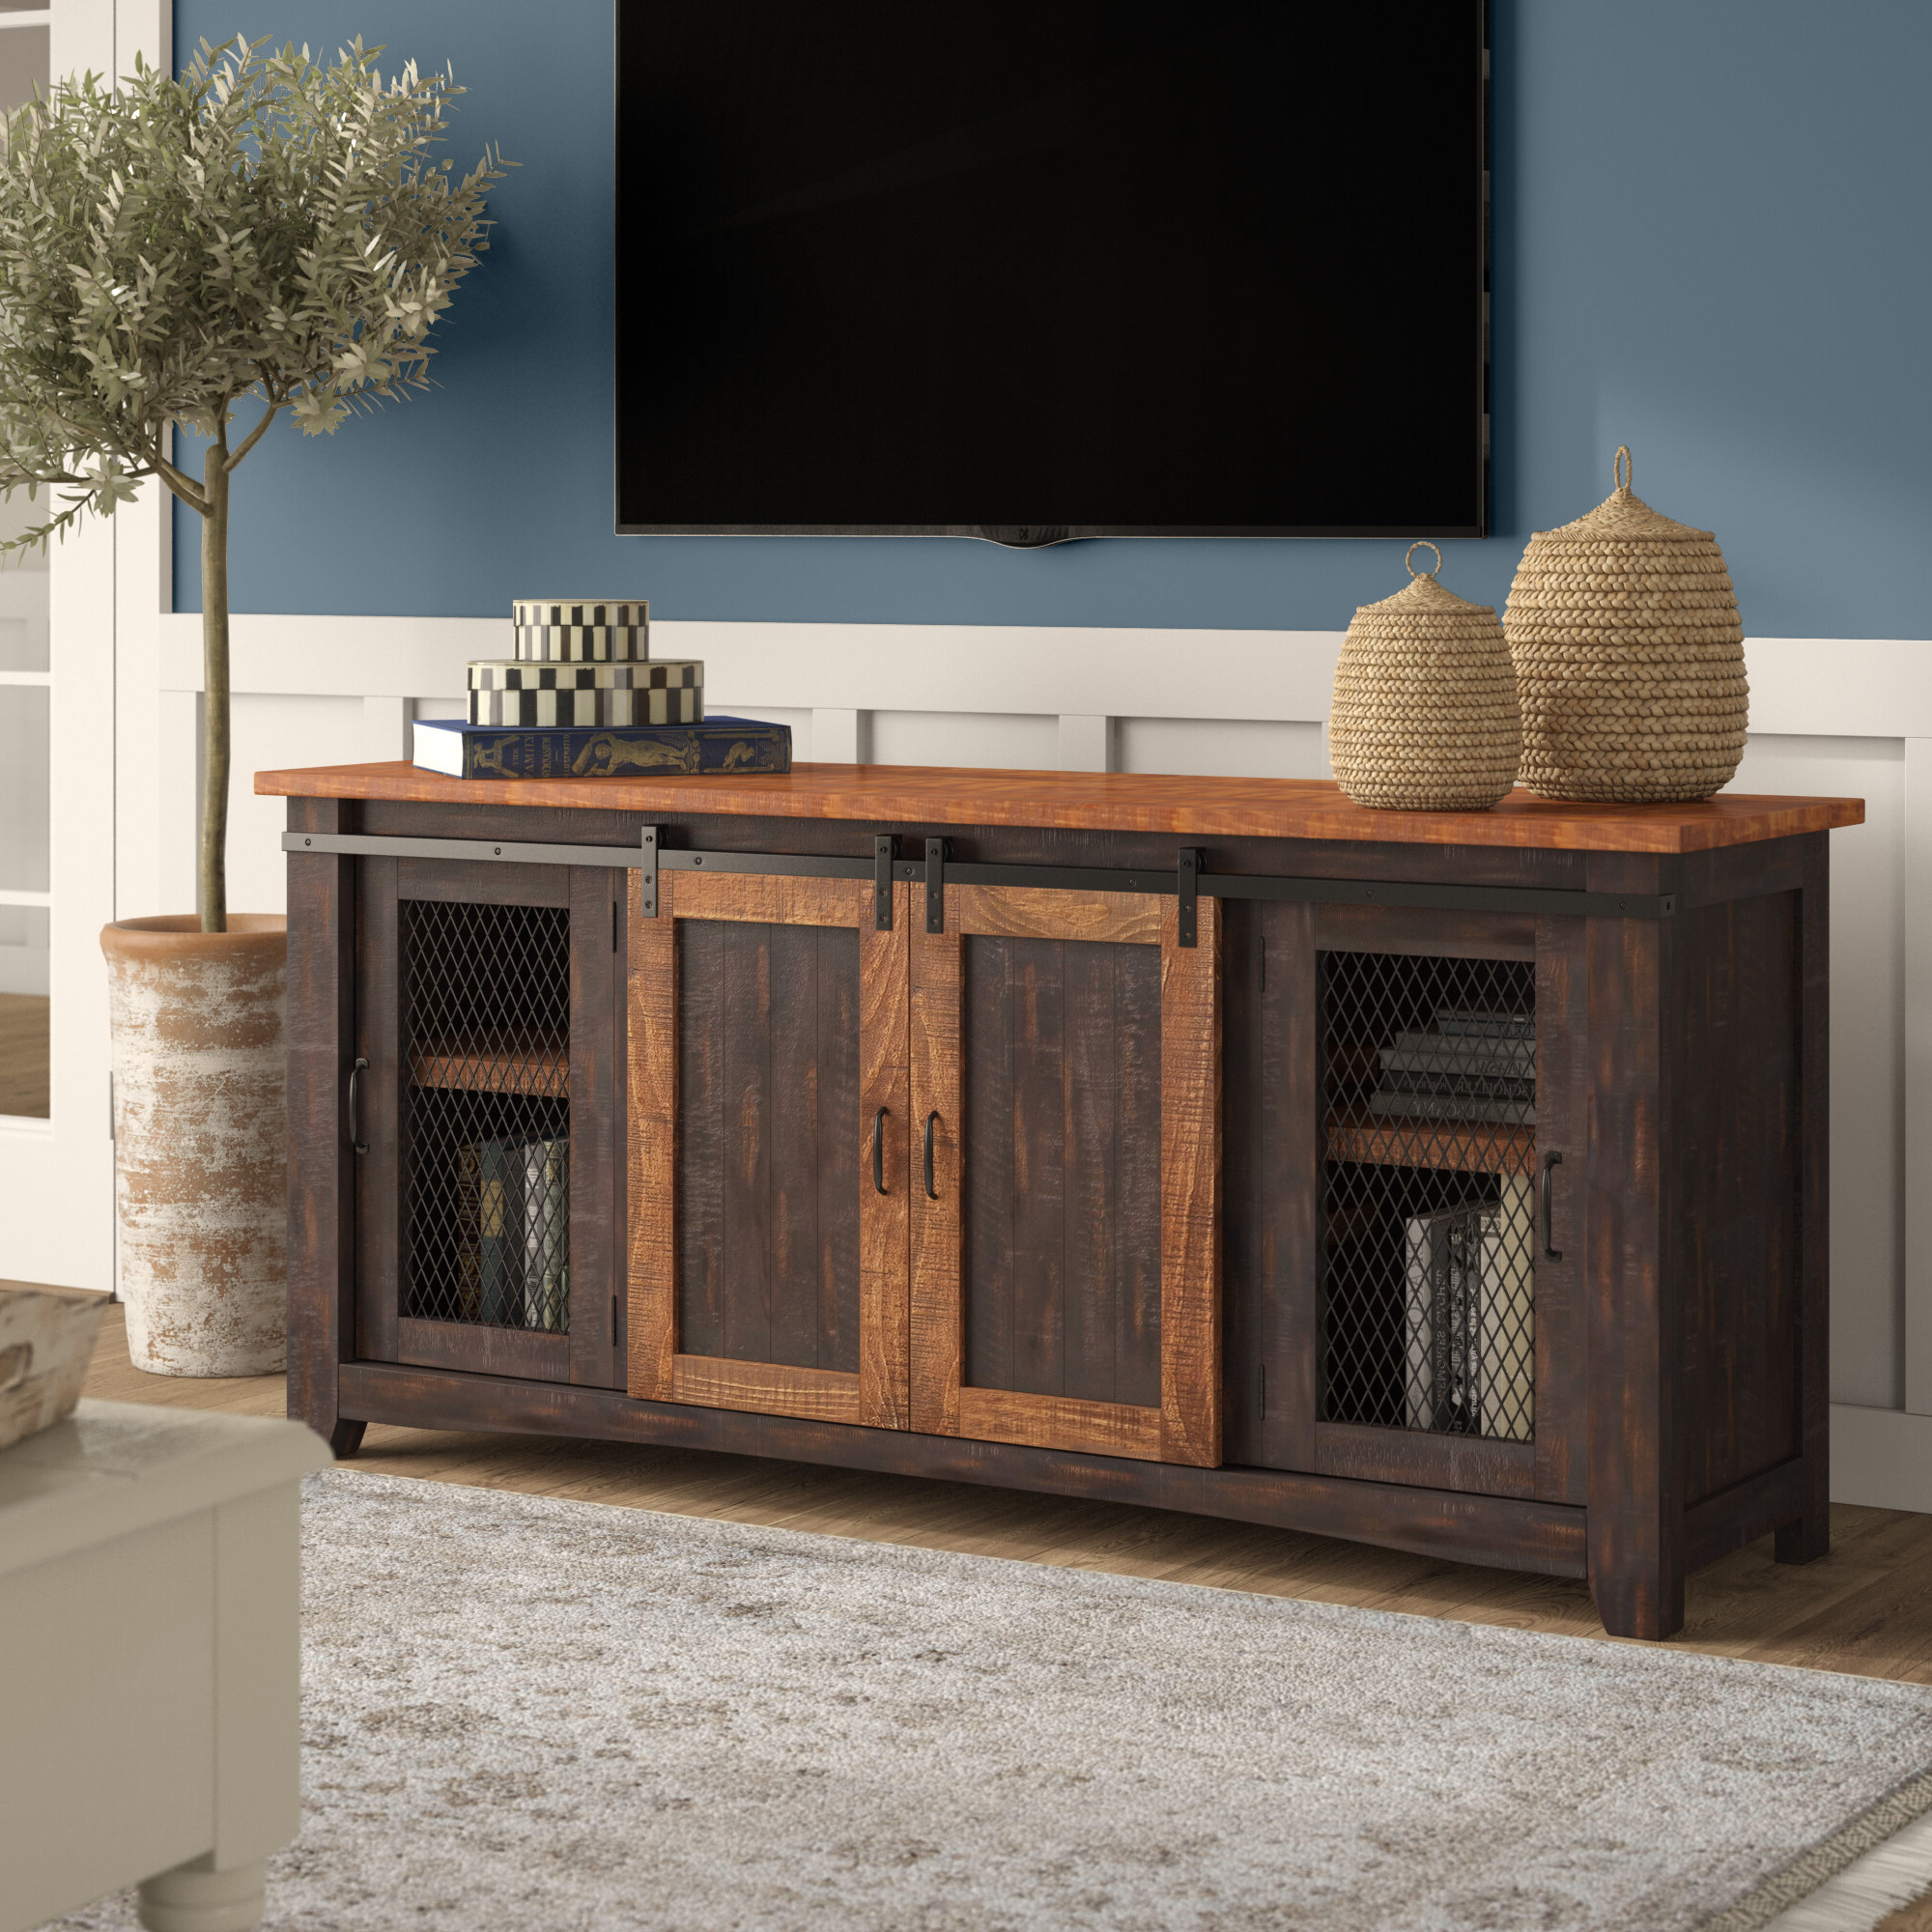 """Gracie Oaks Belen Tv Stand For Tvs Up To 70"""" Throughout 2020 Parmelee Tv Stands For Tvs Up To 65"""" (View 17 of 20)"""